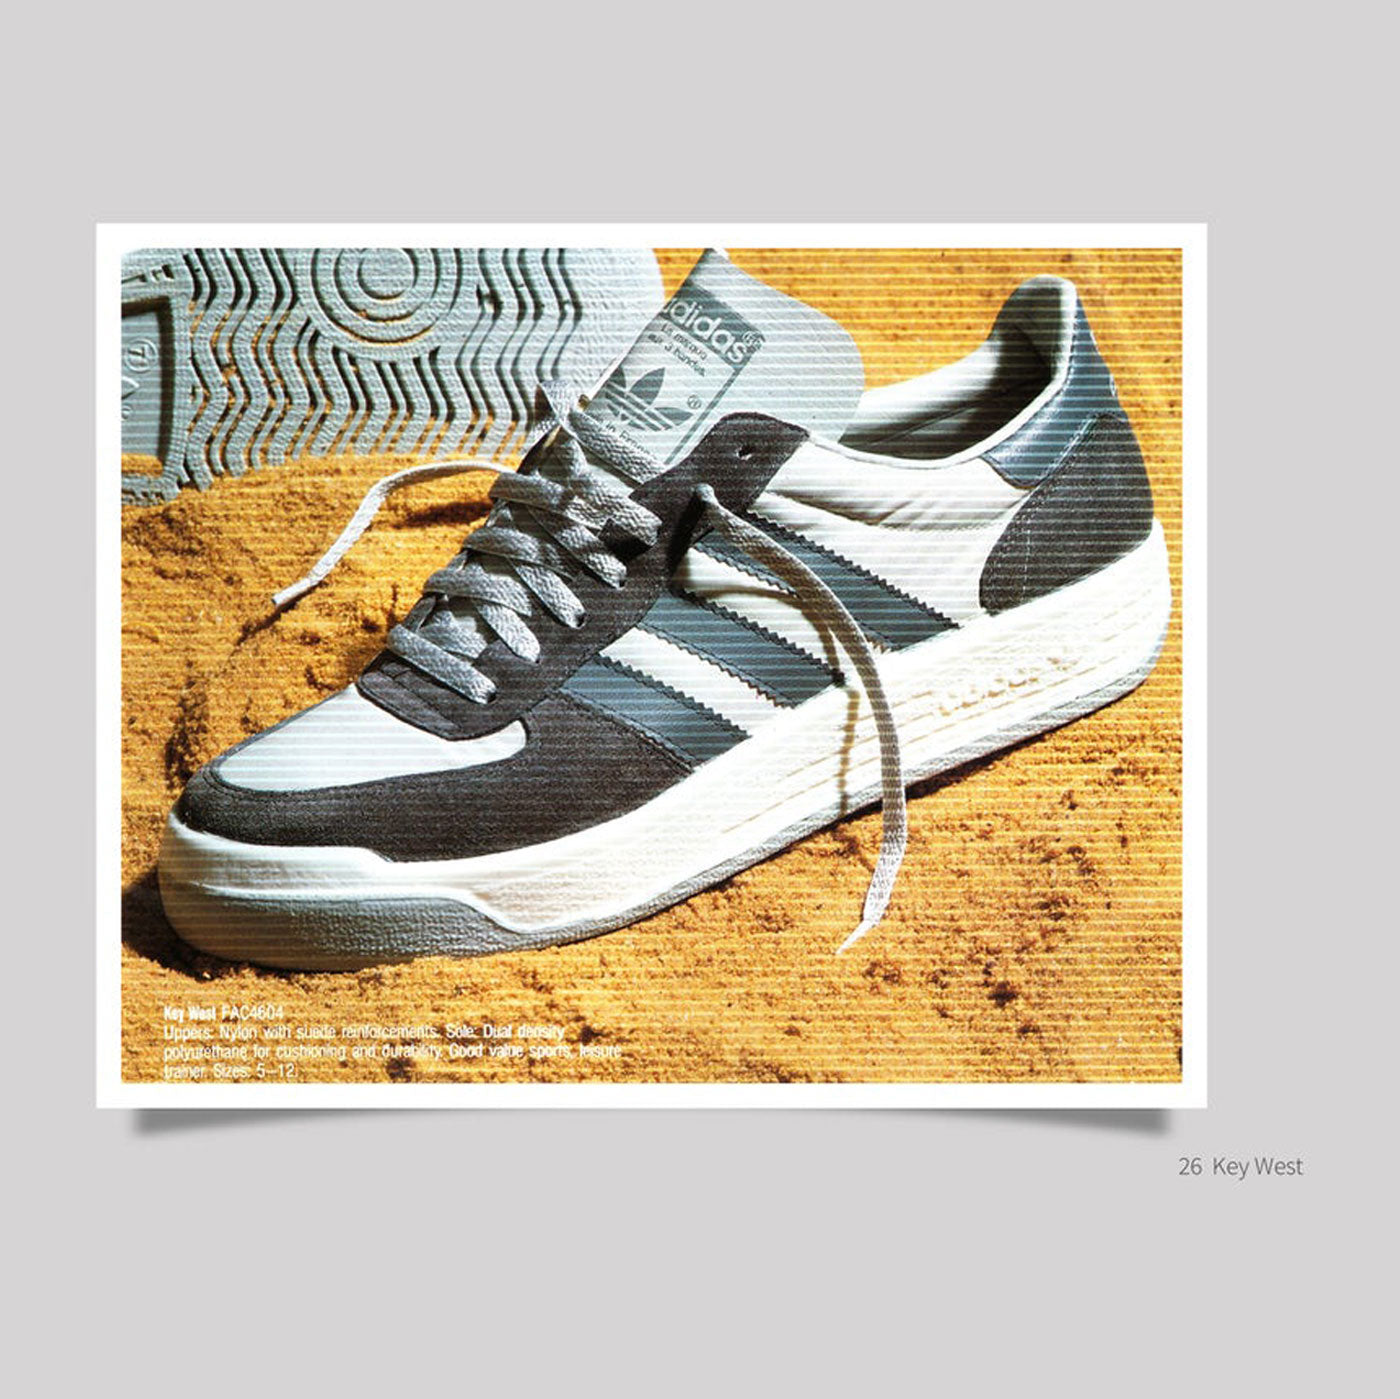 Vintage Adidas Schuhe - Islands and Rest of the World - Book 3